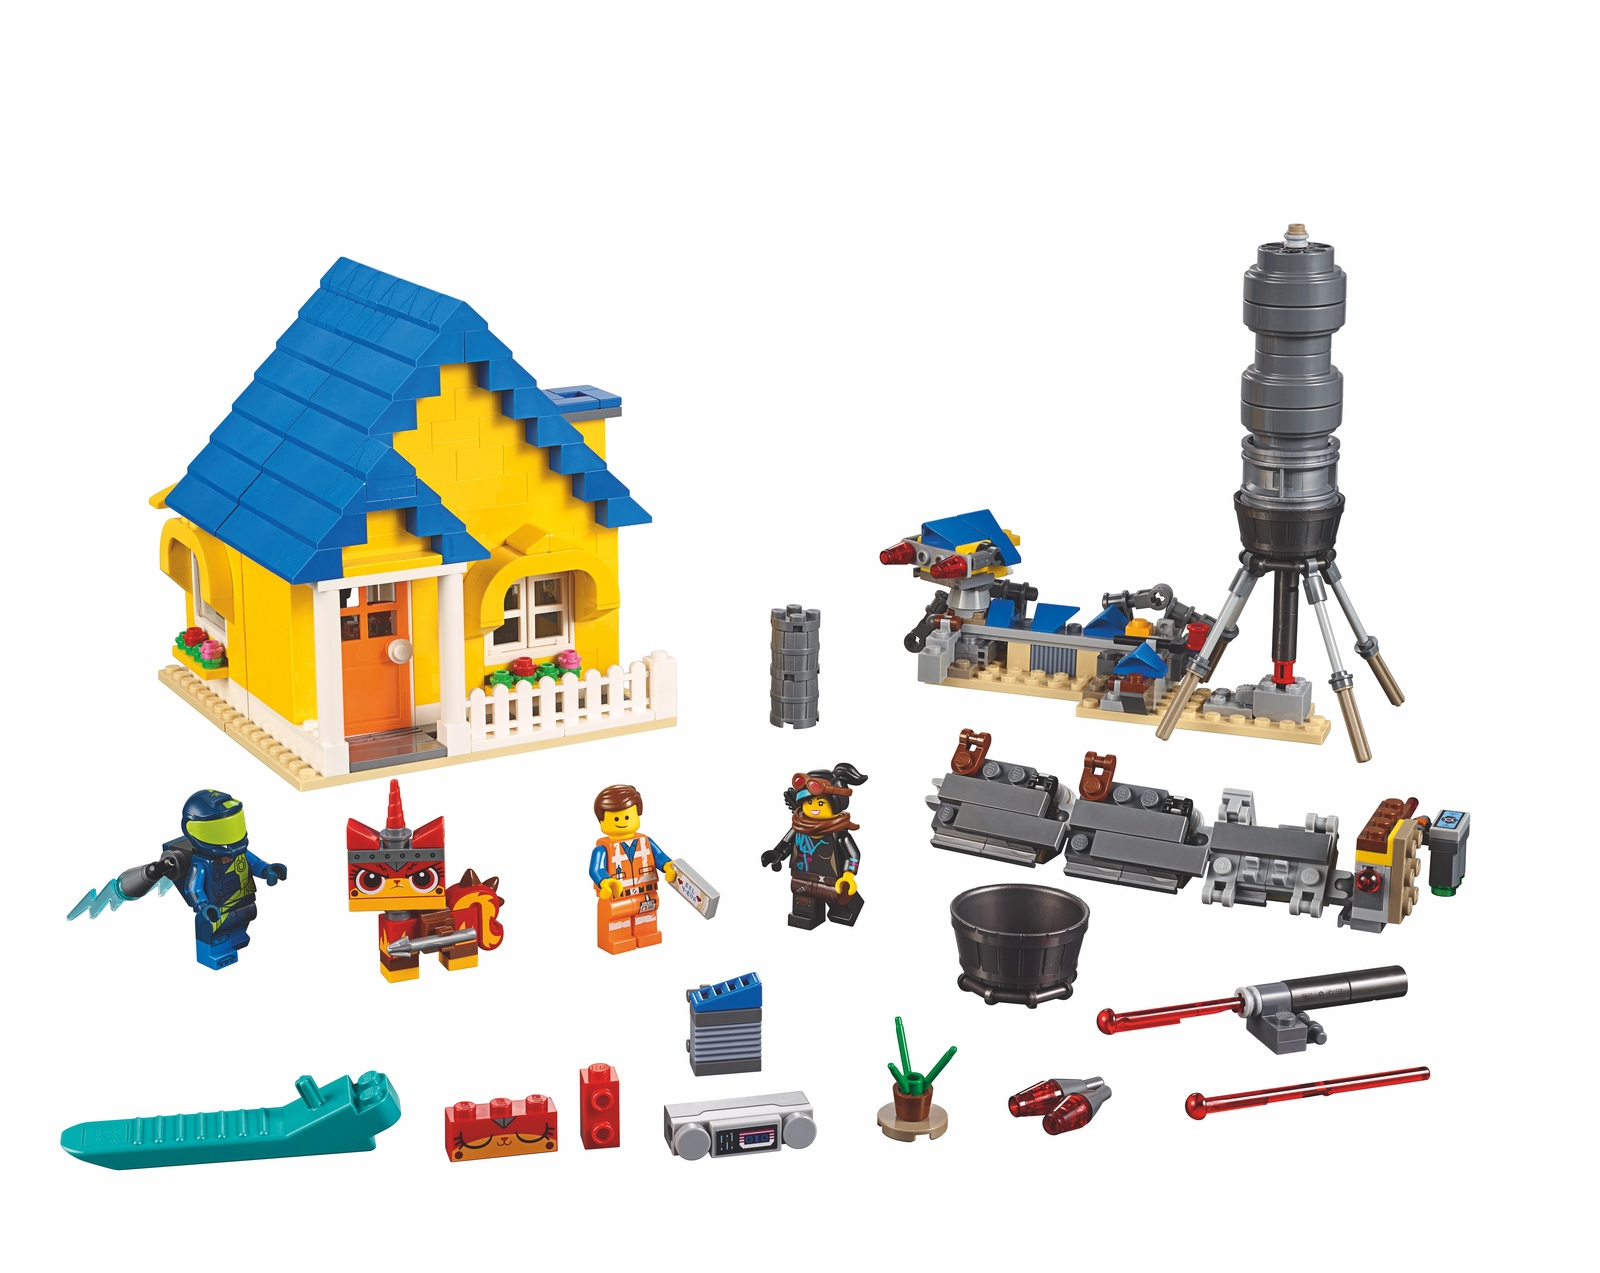 the-lego-movie-2-emmets-dream-house-and-rescue-rocket-70831-2019 zusammengebaut.com